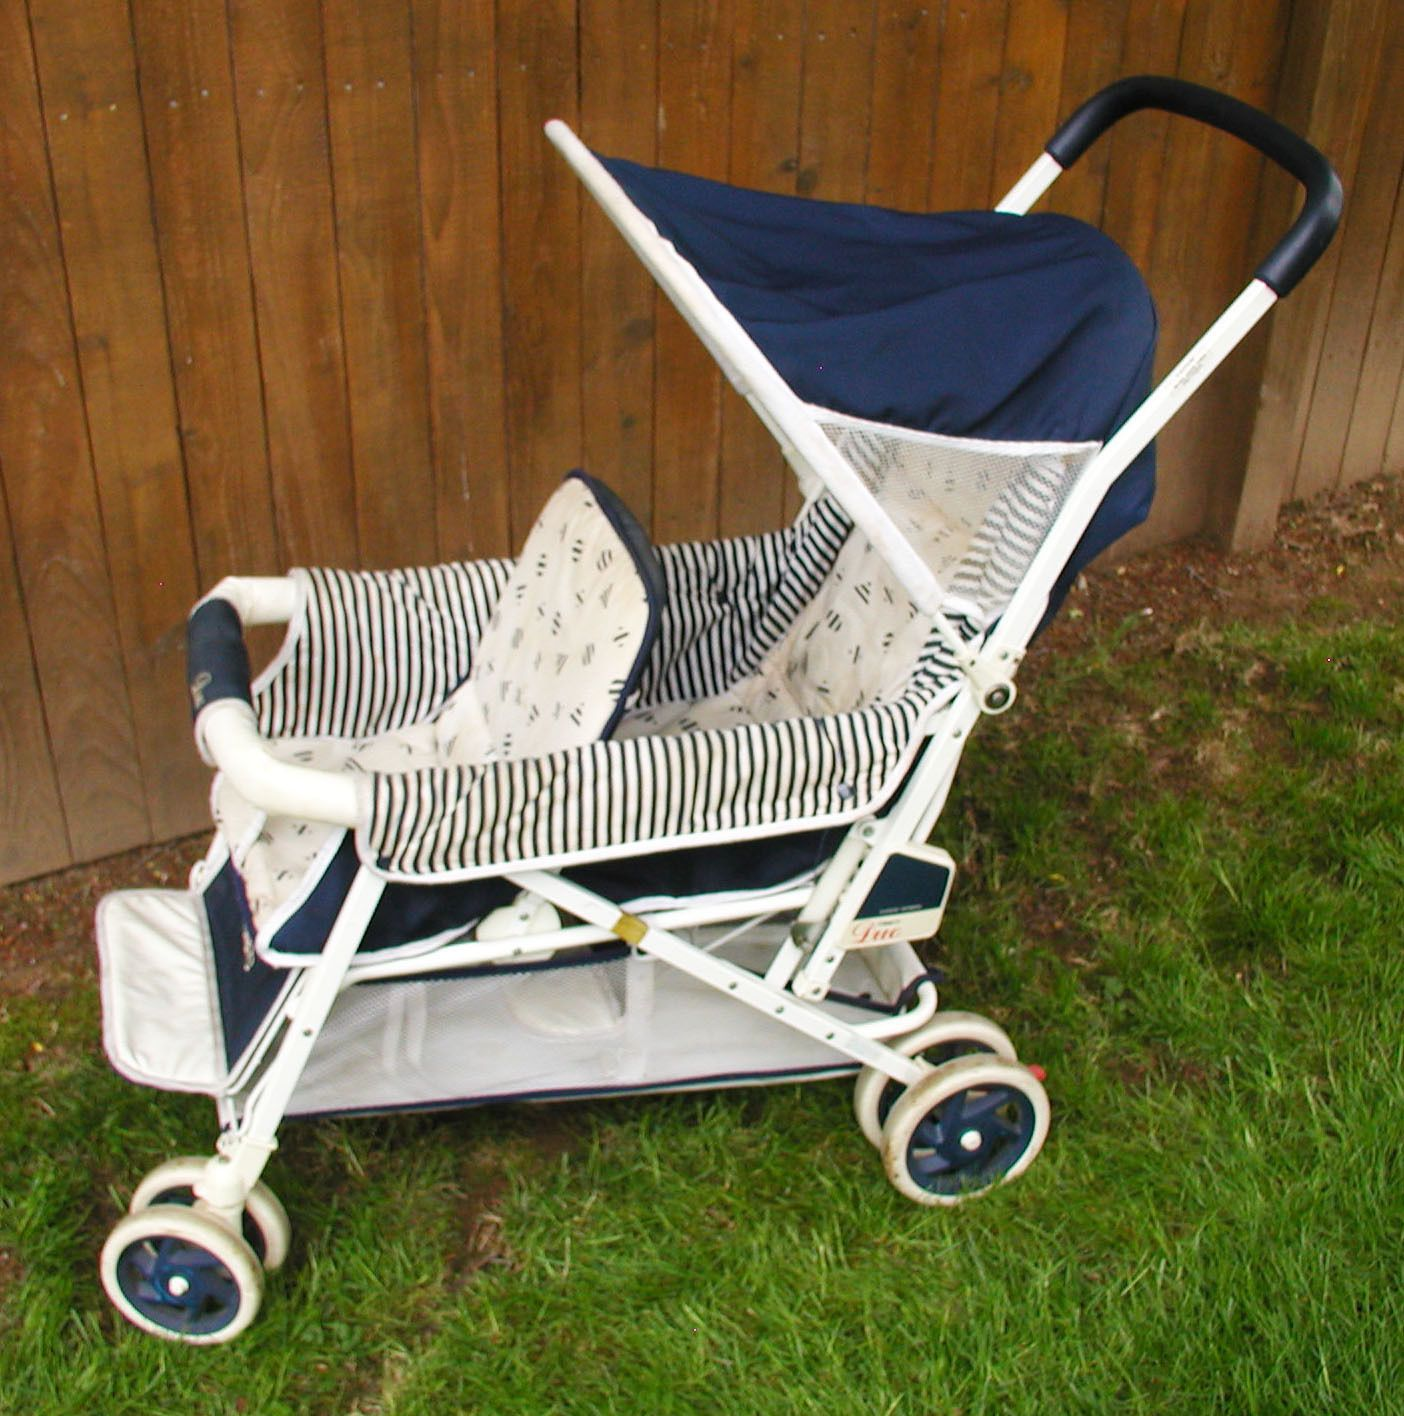 Pin by Angela Bertis on Vintage Baby strollers, Baby